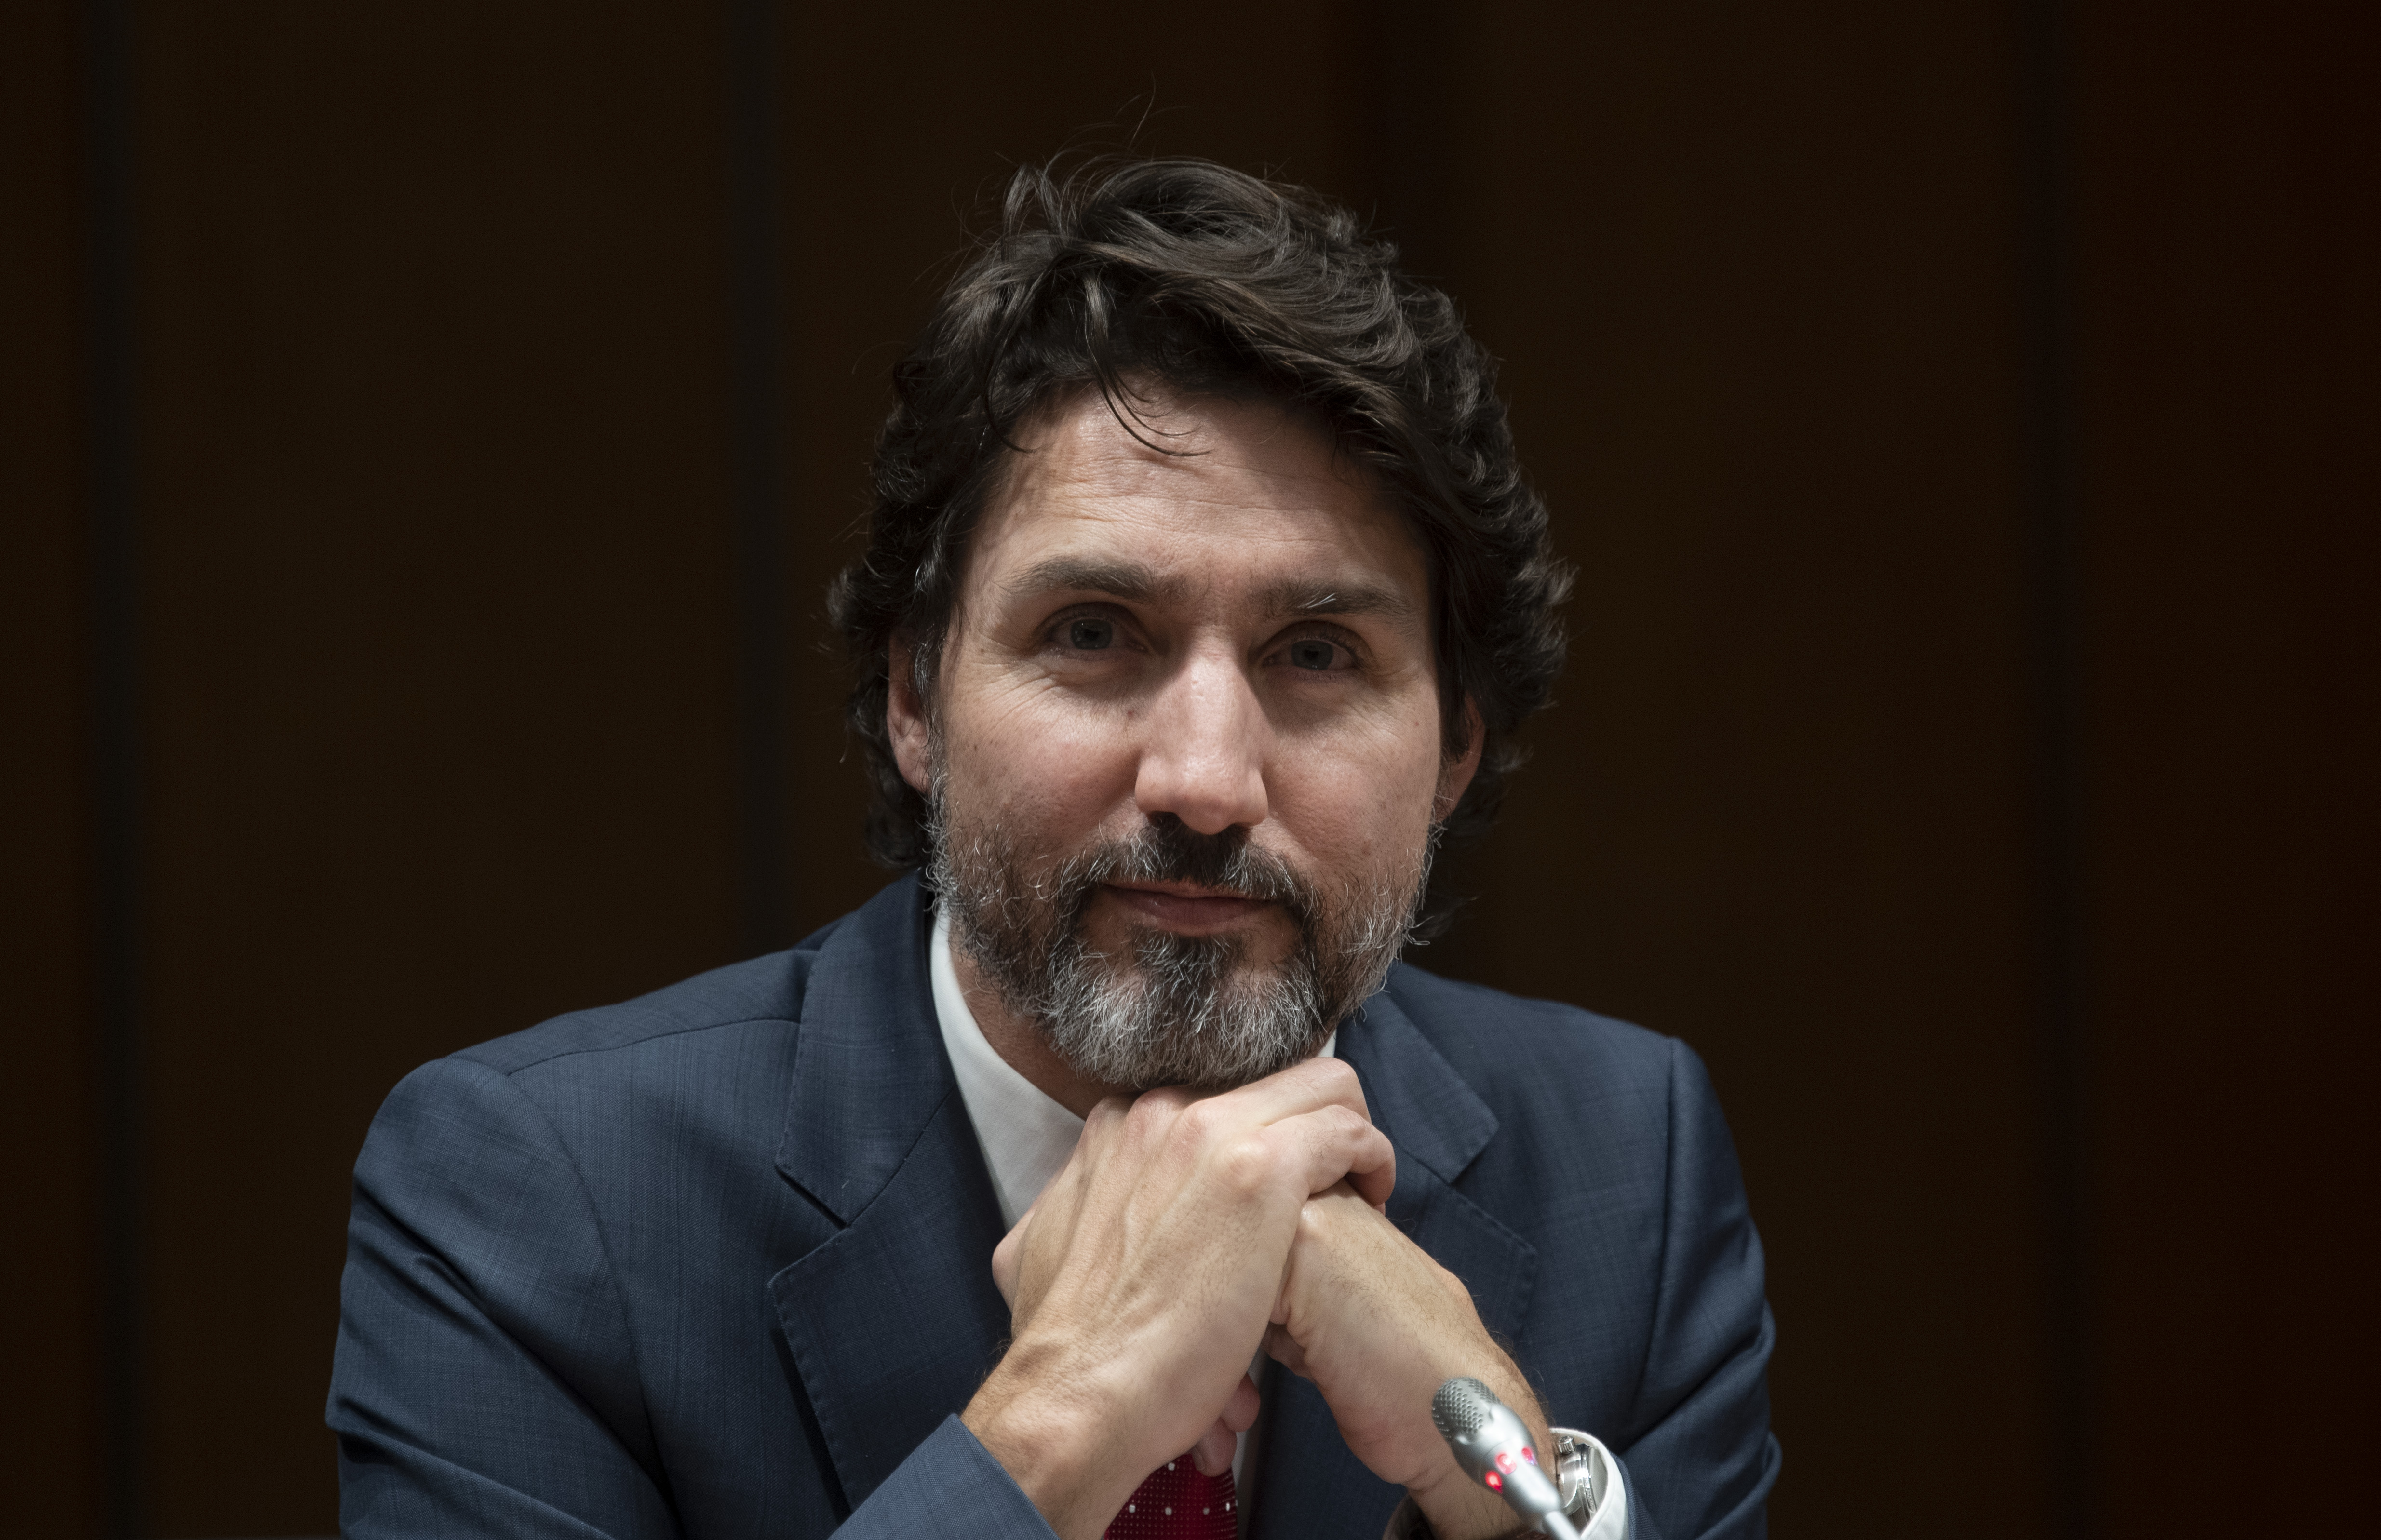 Canada News Today - Support for Trudeau's handling of COVID-19 not enough to win him a majority: Ipsos poll | NewsBurrow thumbnail